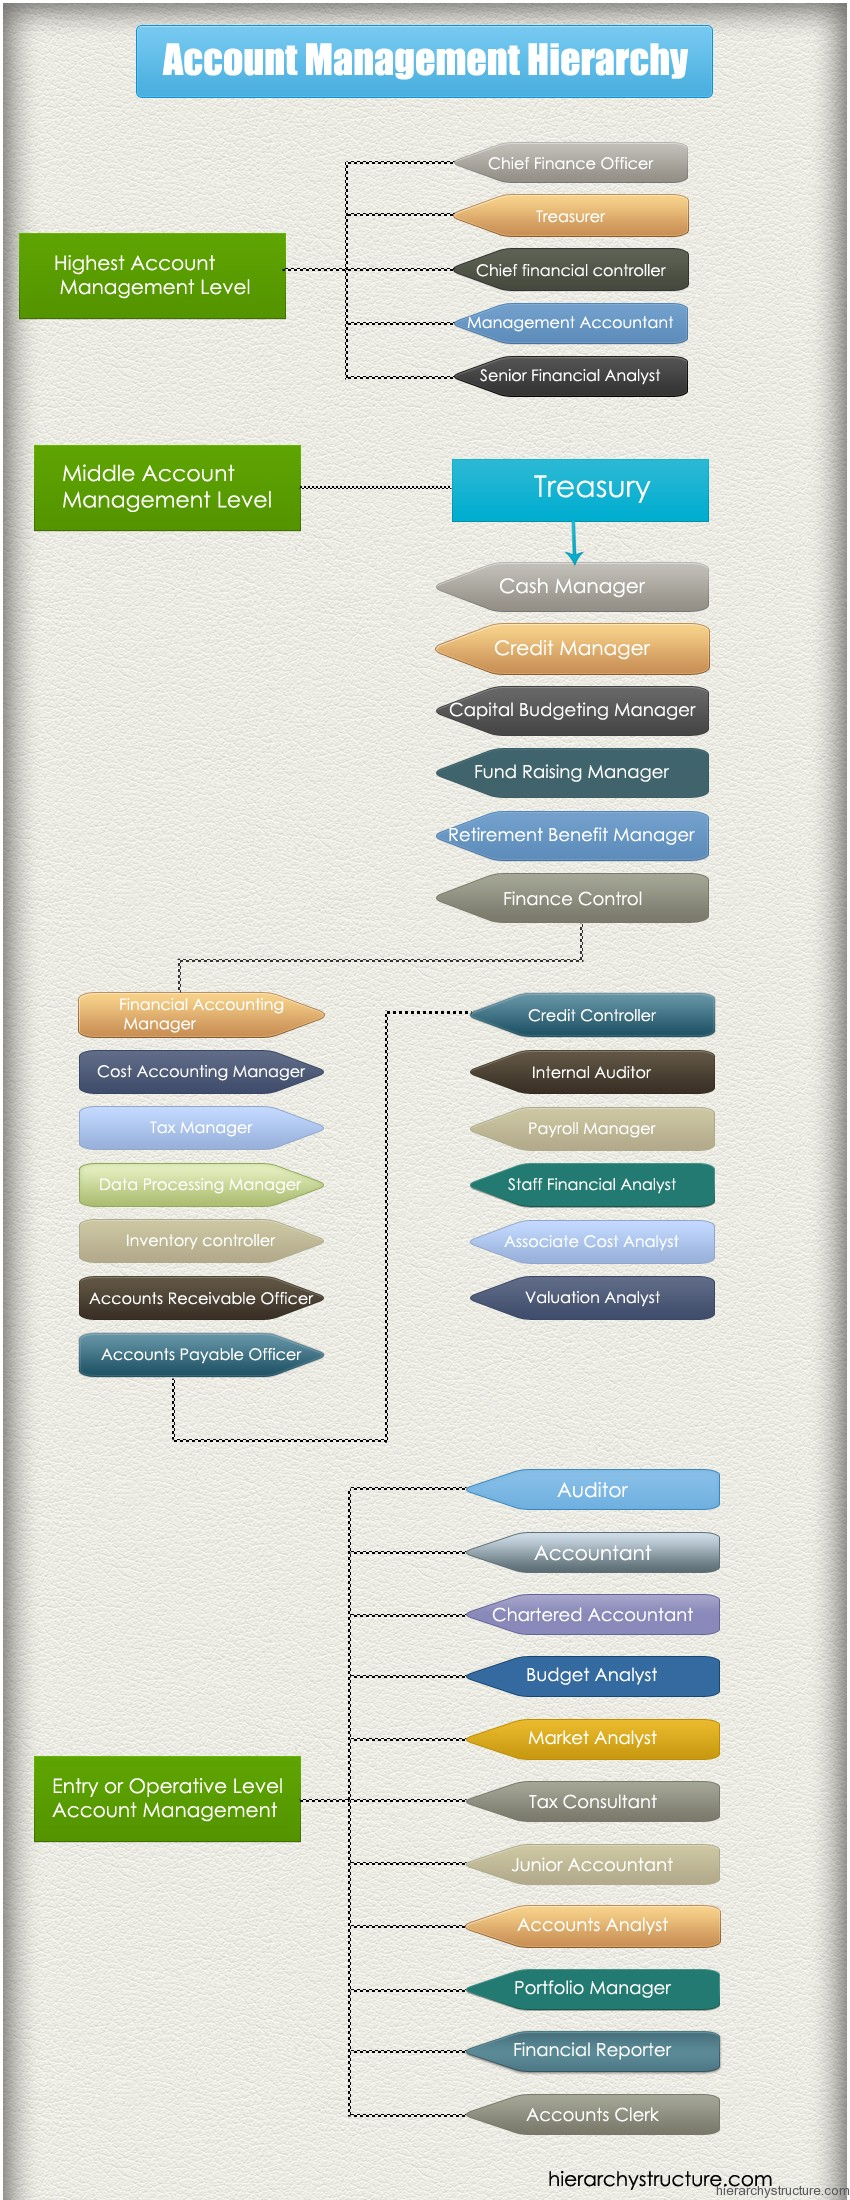 Account Management Hierarchy